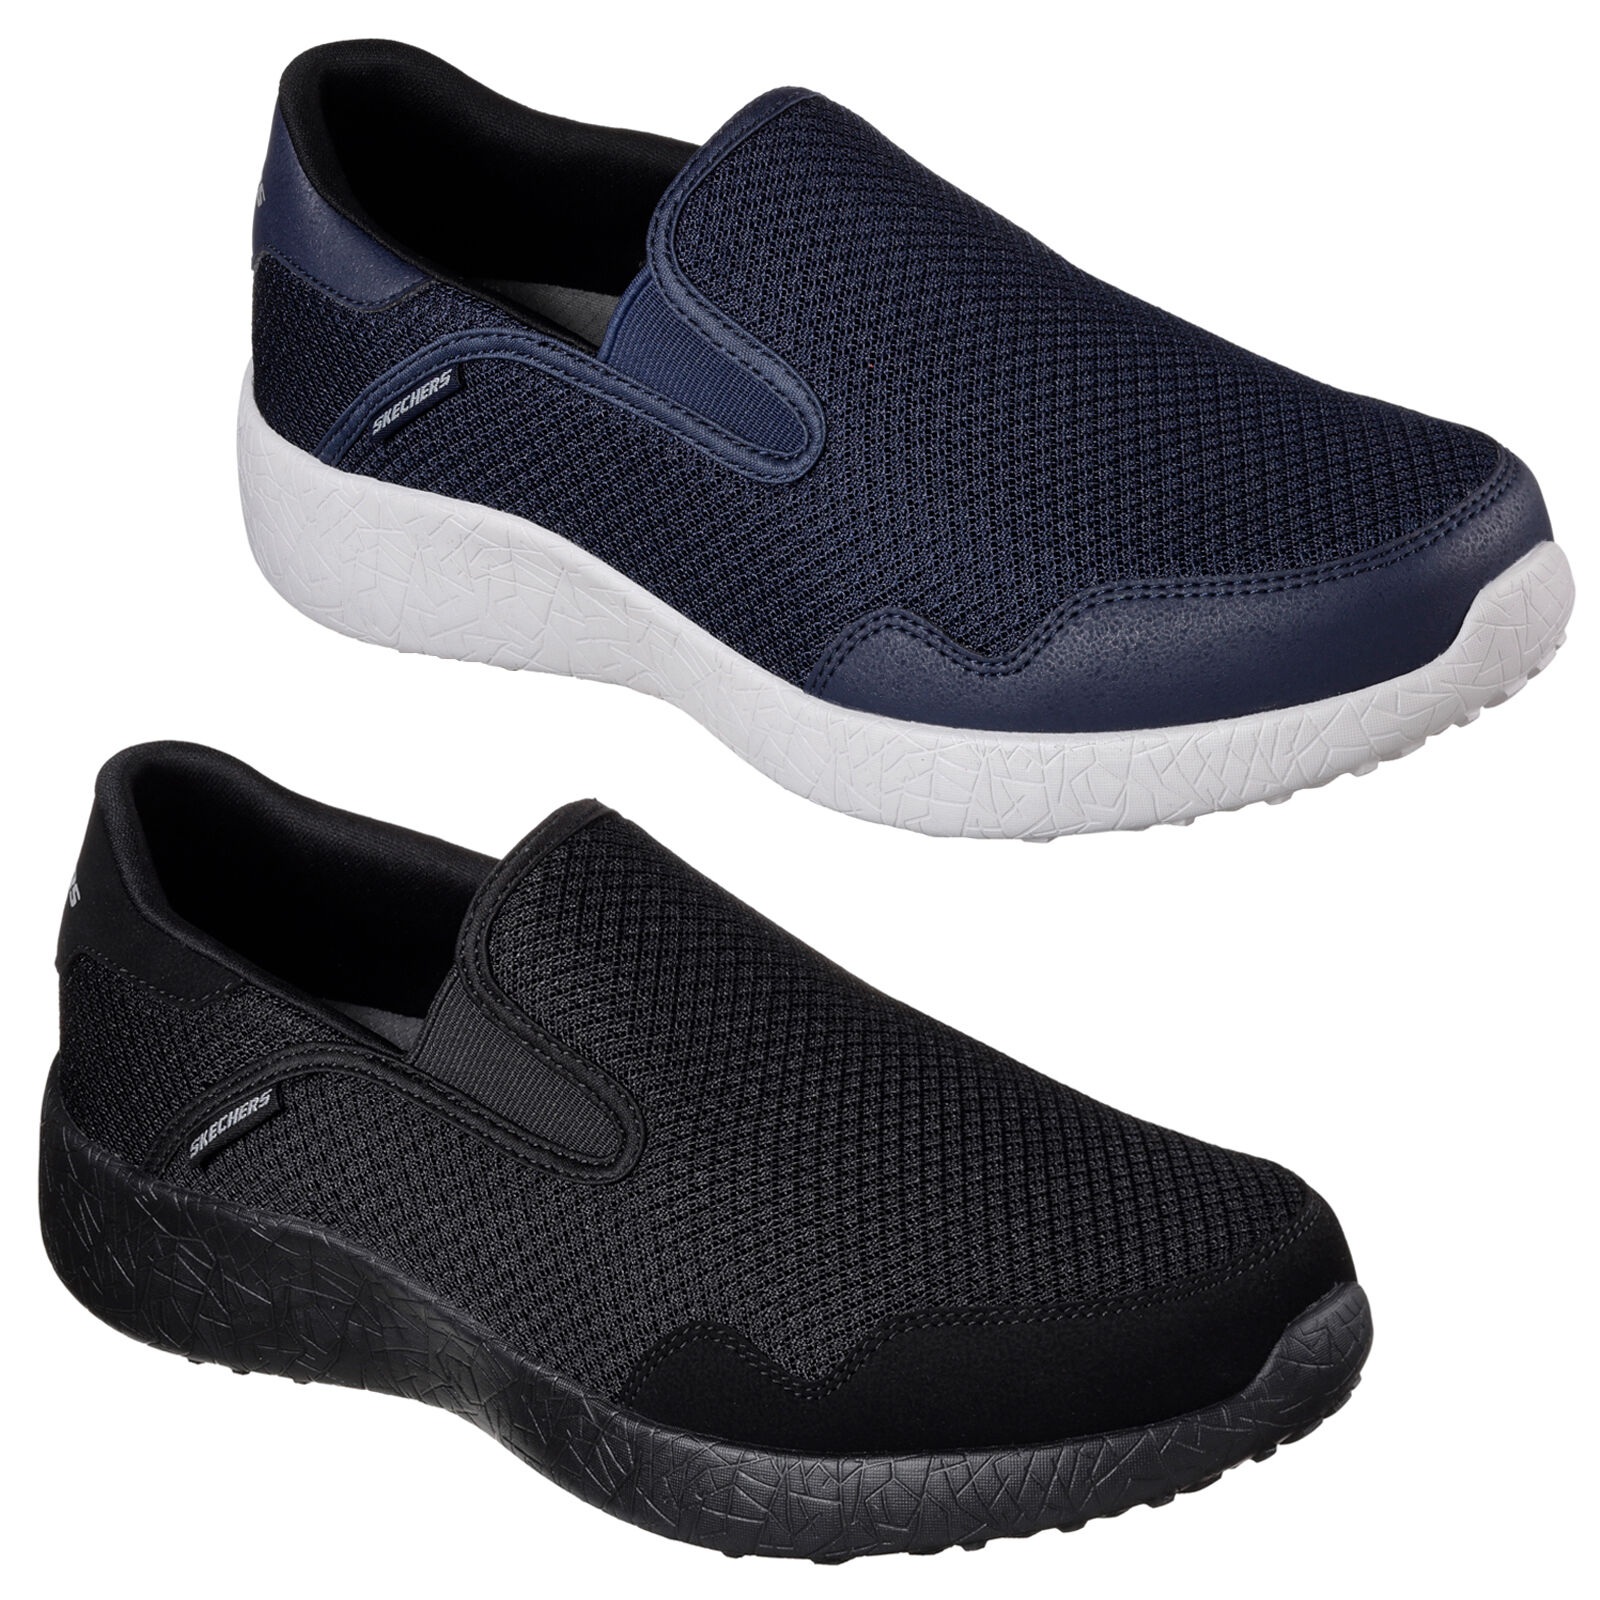 841bf989712d Skechers Burst Just In Time Shoes Mens Go Walk Memory Foam Sports Trainers